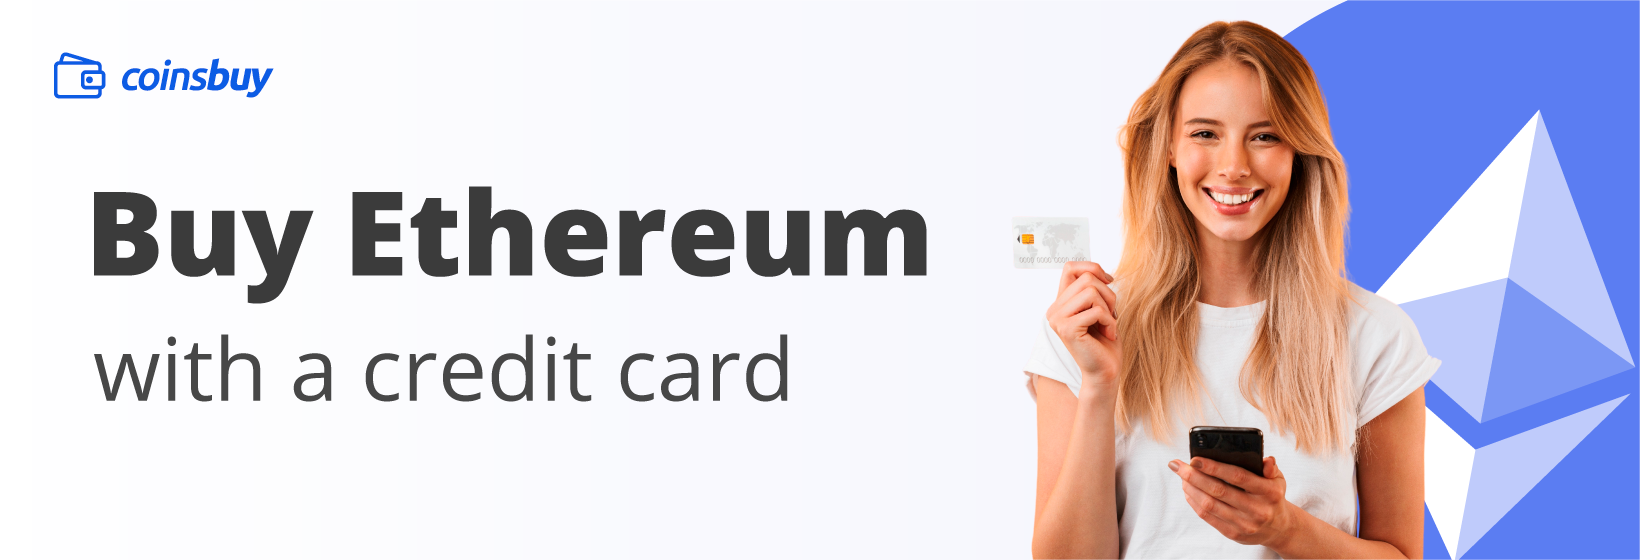 Buy Ethereum with a credit card